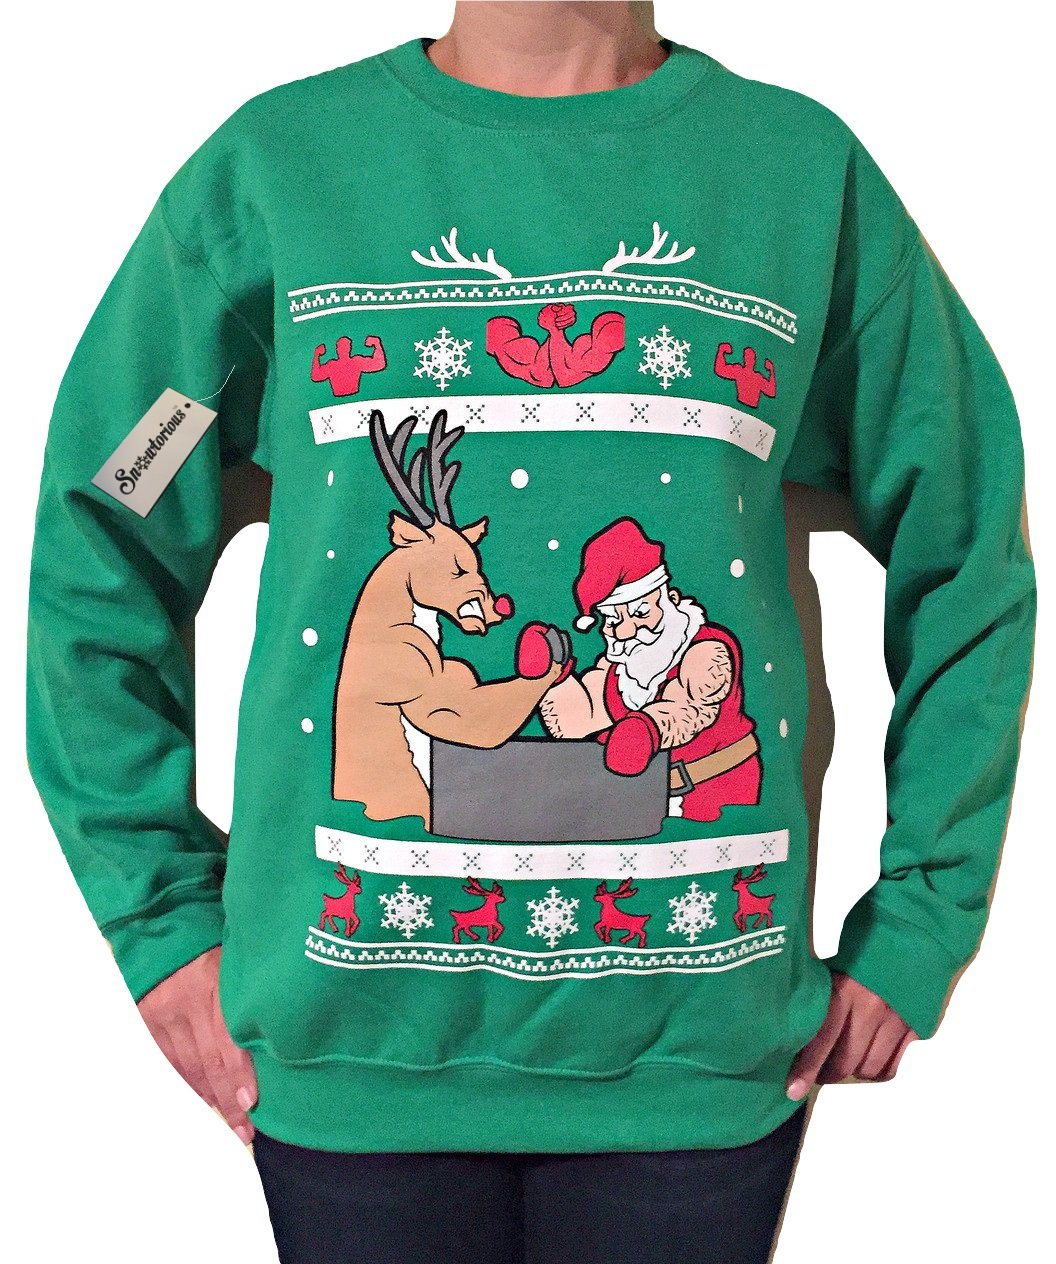 Arm Wrestling - Ugly Christmas Sweater (green, large) by Snowtorious